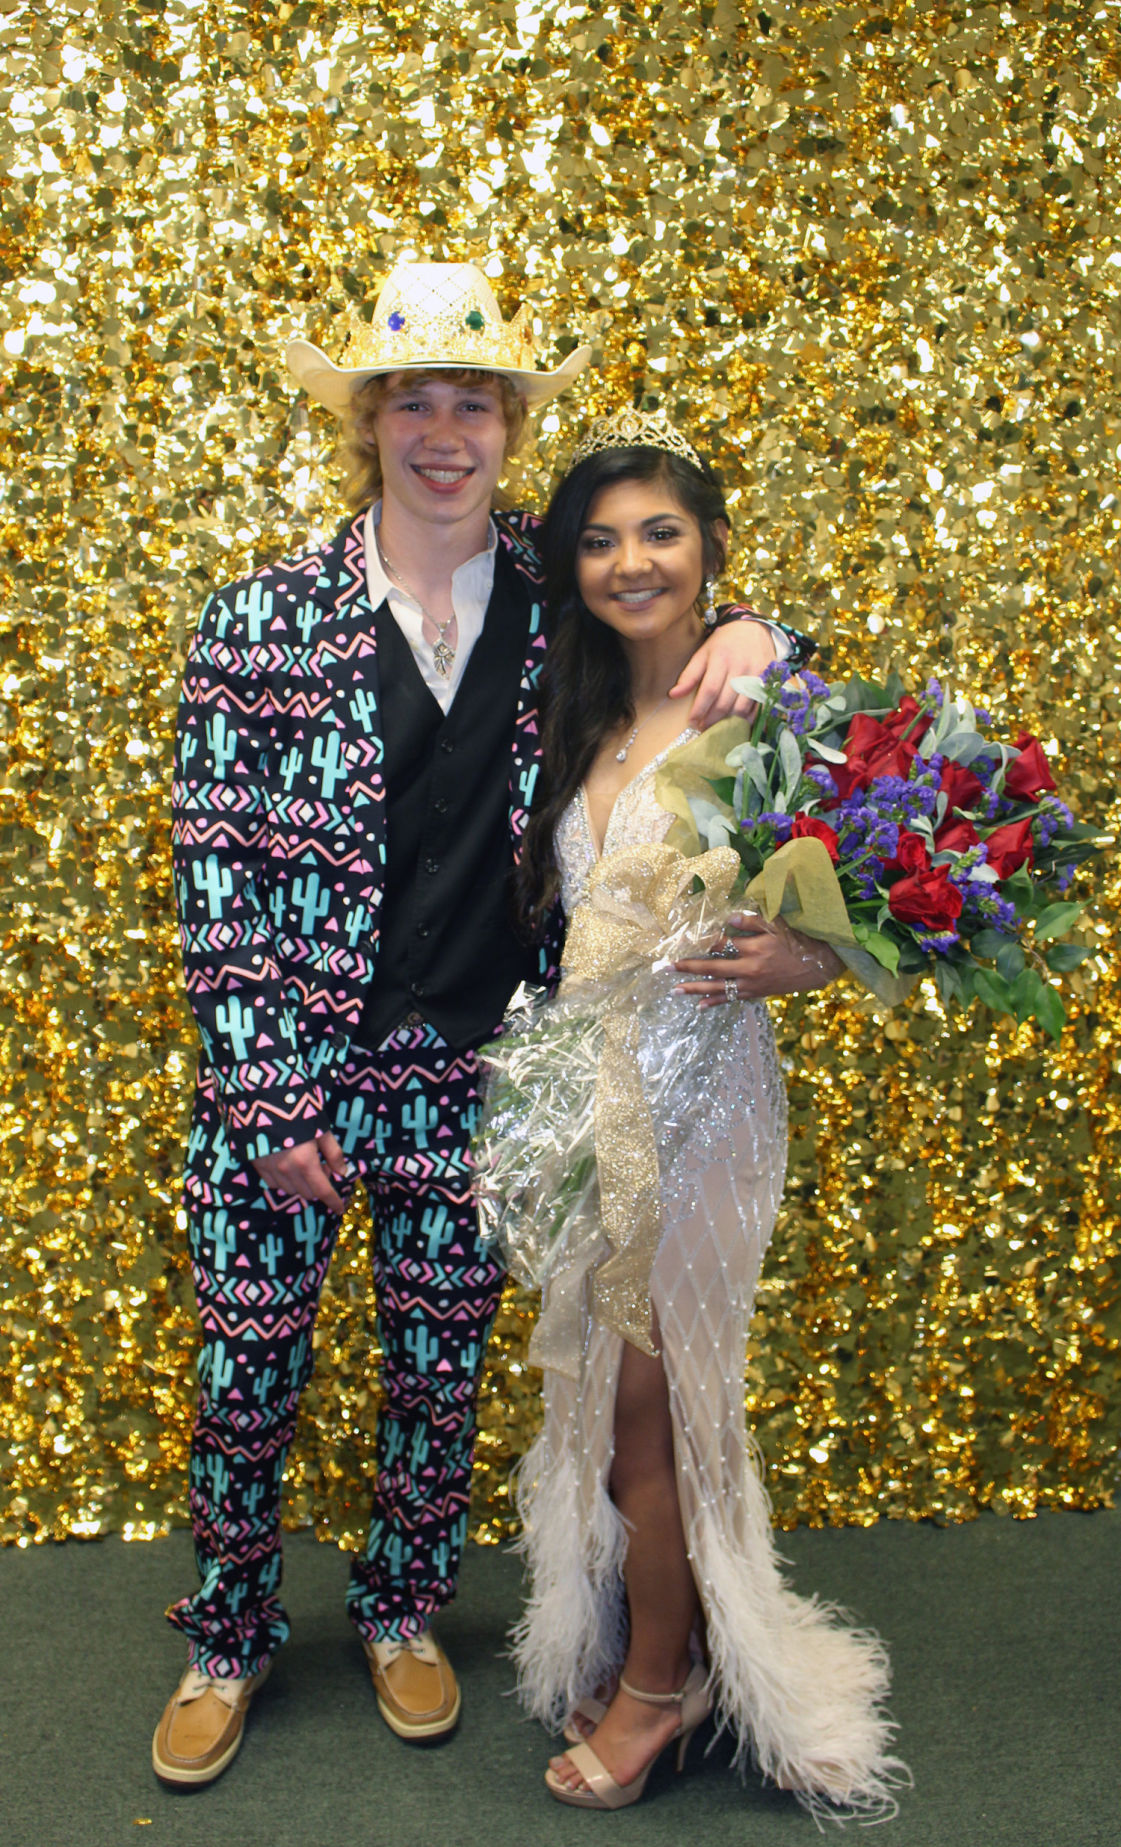 Leon County School Calendar 2019-18 Franklin High School prom, 2019 | Gallery | theeagle.com